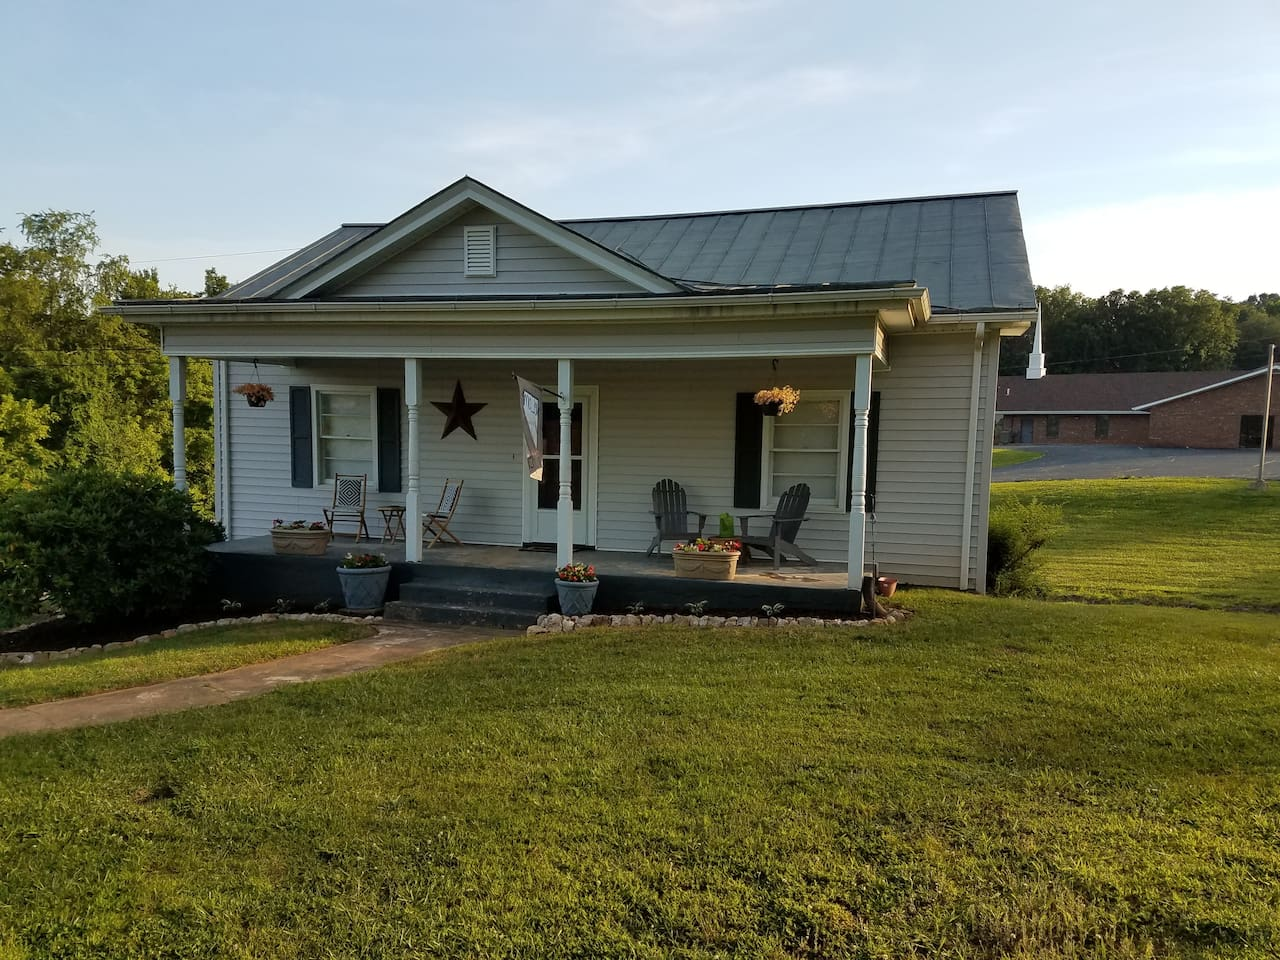 Built in 1900, this home has recently updated central heat and air, electrical, xfinity tv, wifi, and security.